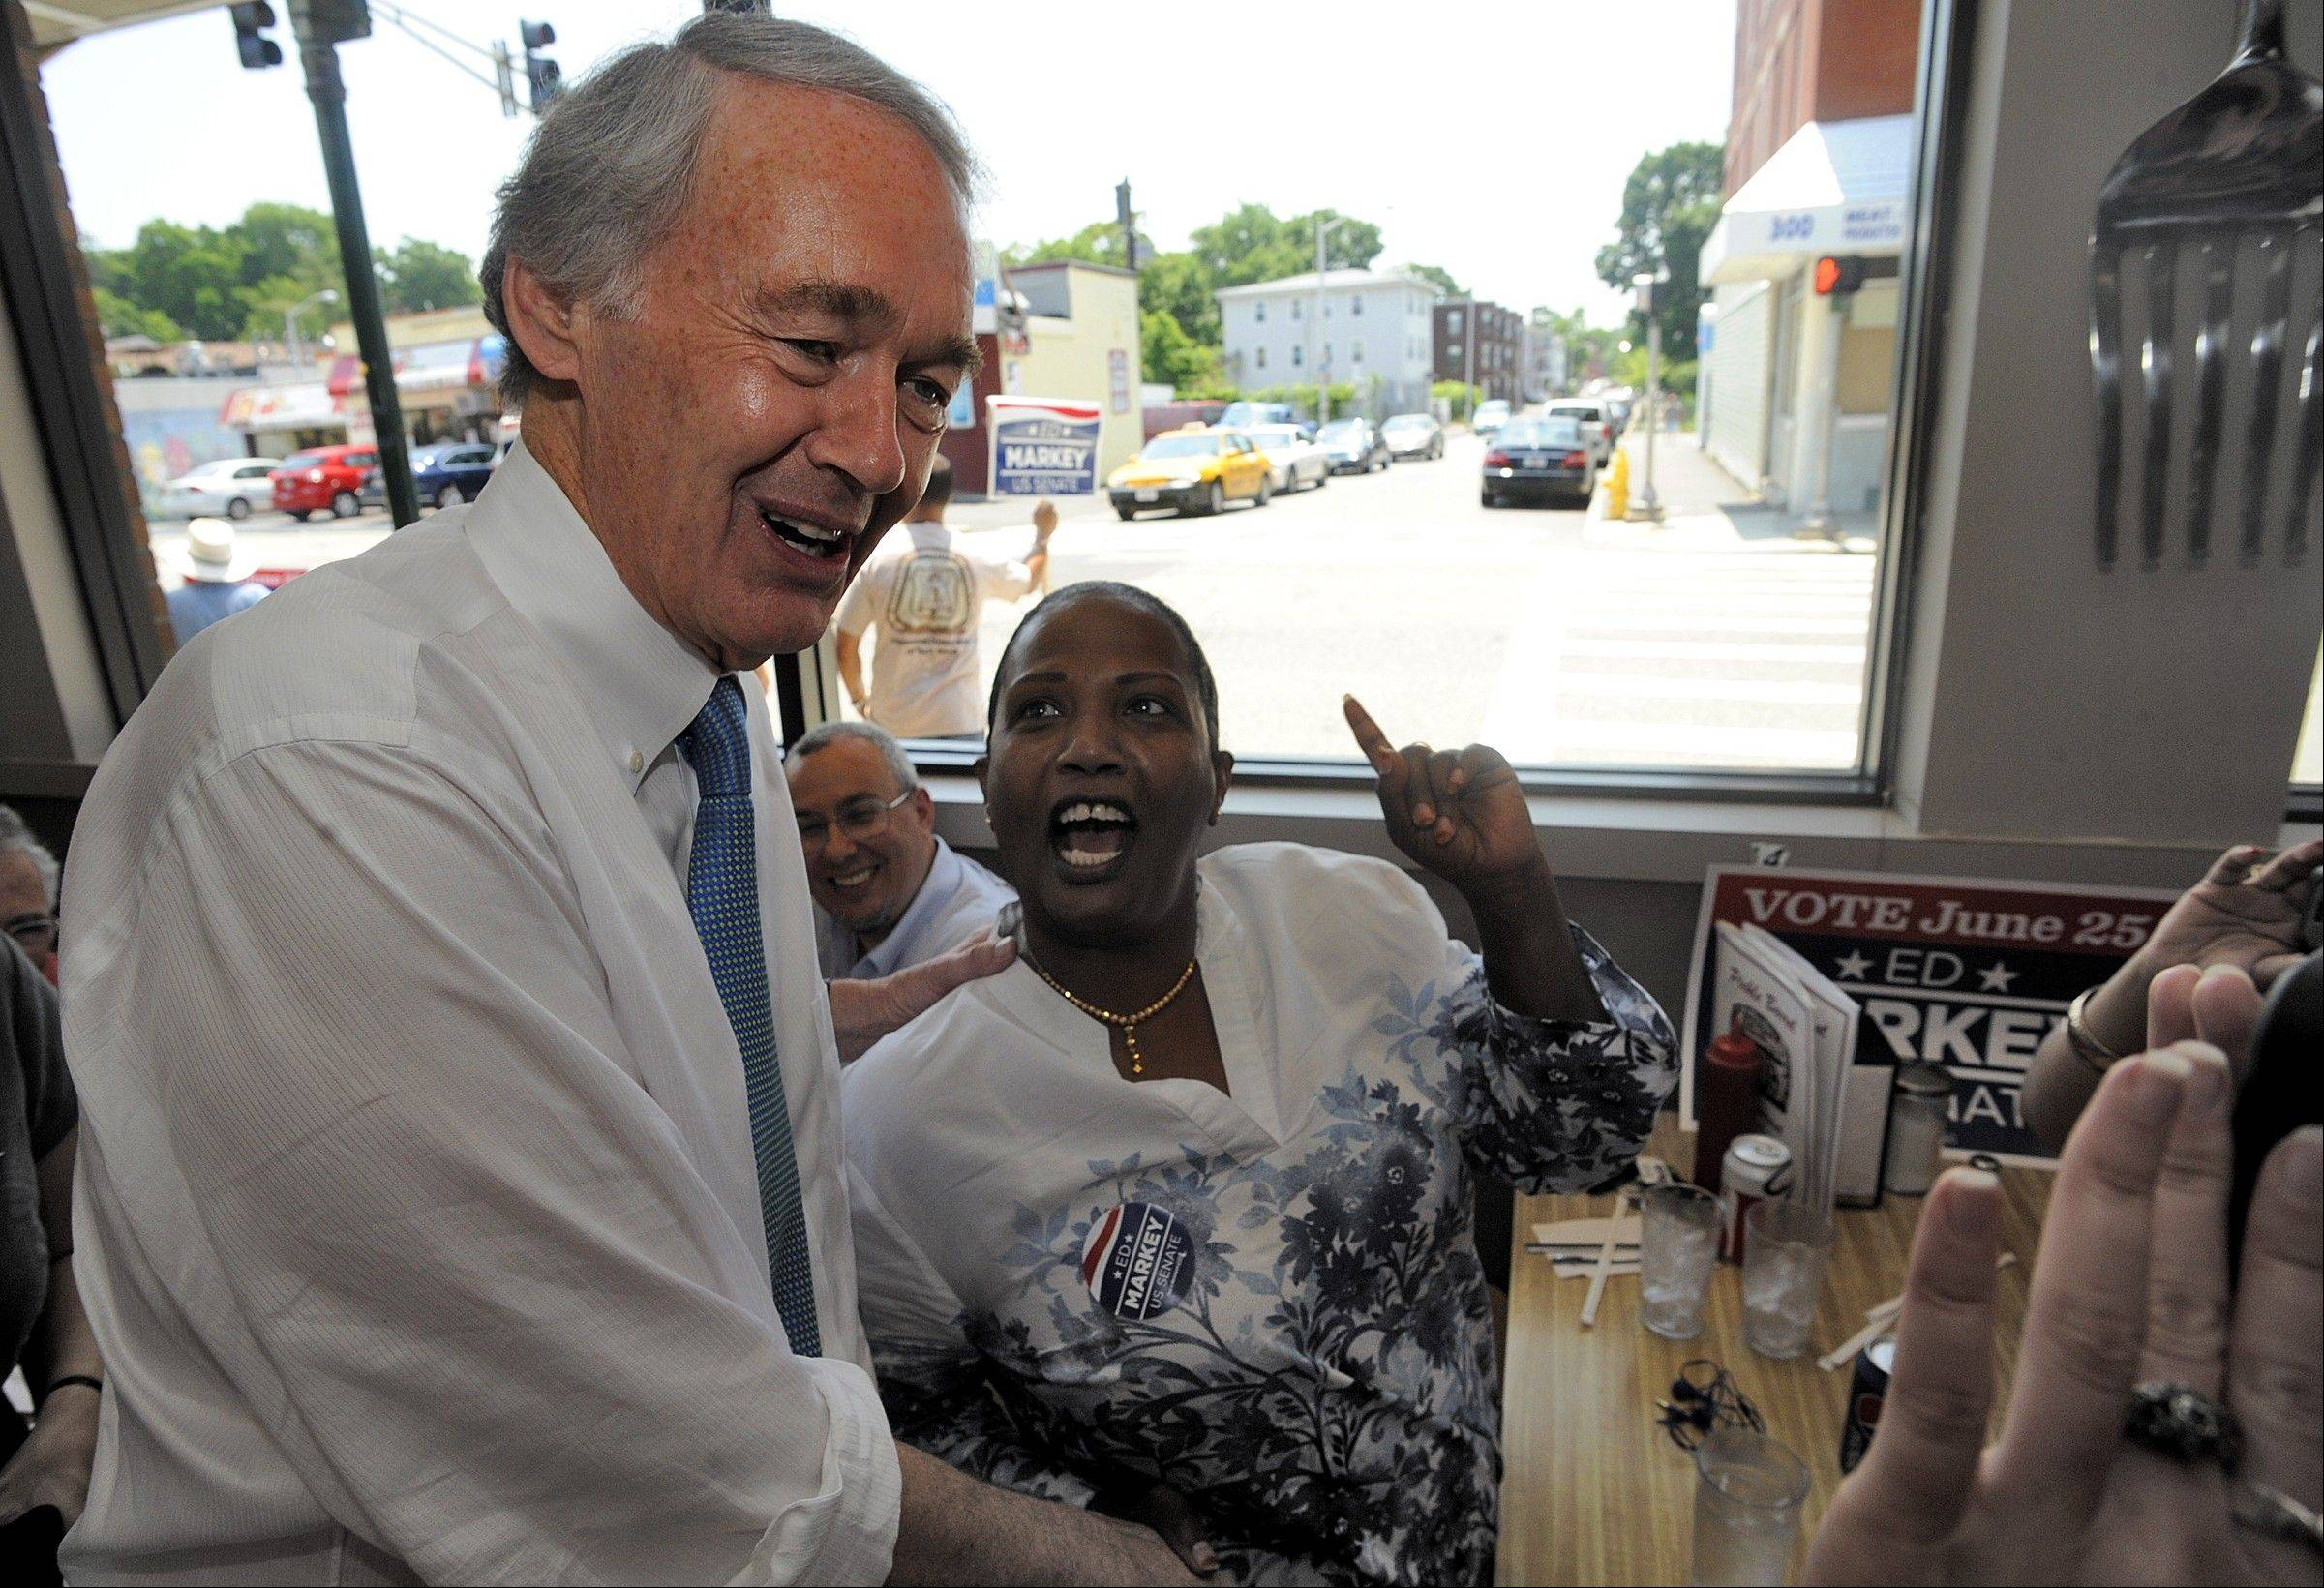 Massachusetts Senate Democratic candidate Ed Markey, left, meets and greets grass-roots volunteers and supporters Monday in the final hours before Massachusetts� special election for the U.S. Senate, where turnout is expected to be light, a contrast to the high-profile special election in the state three years ago.